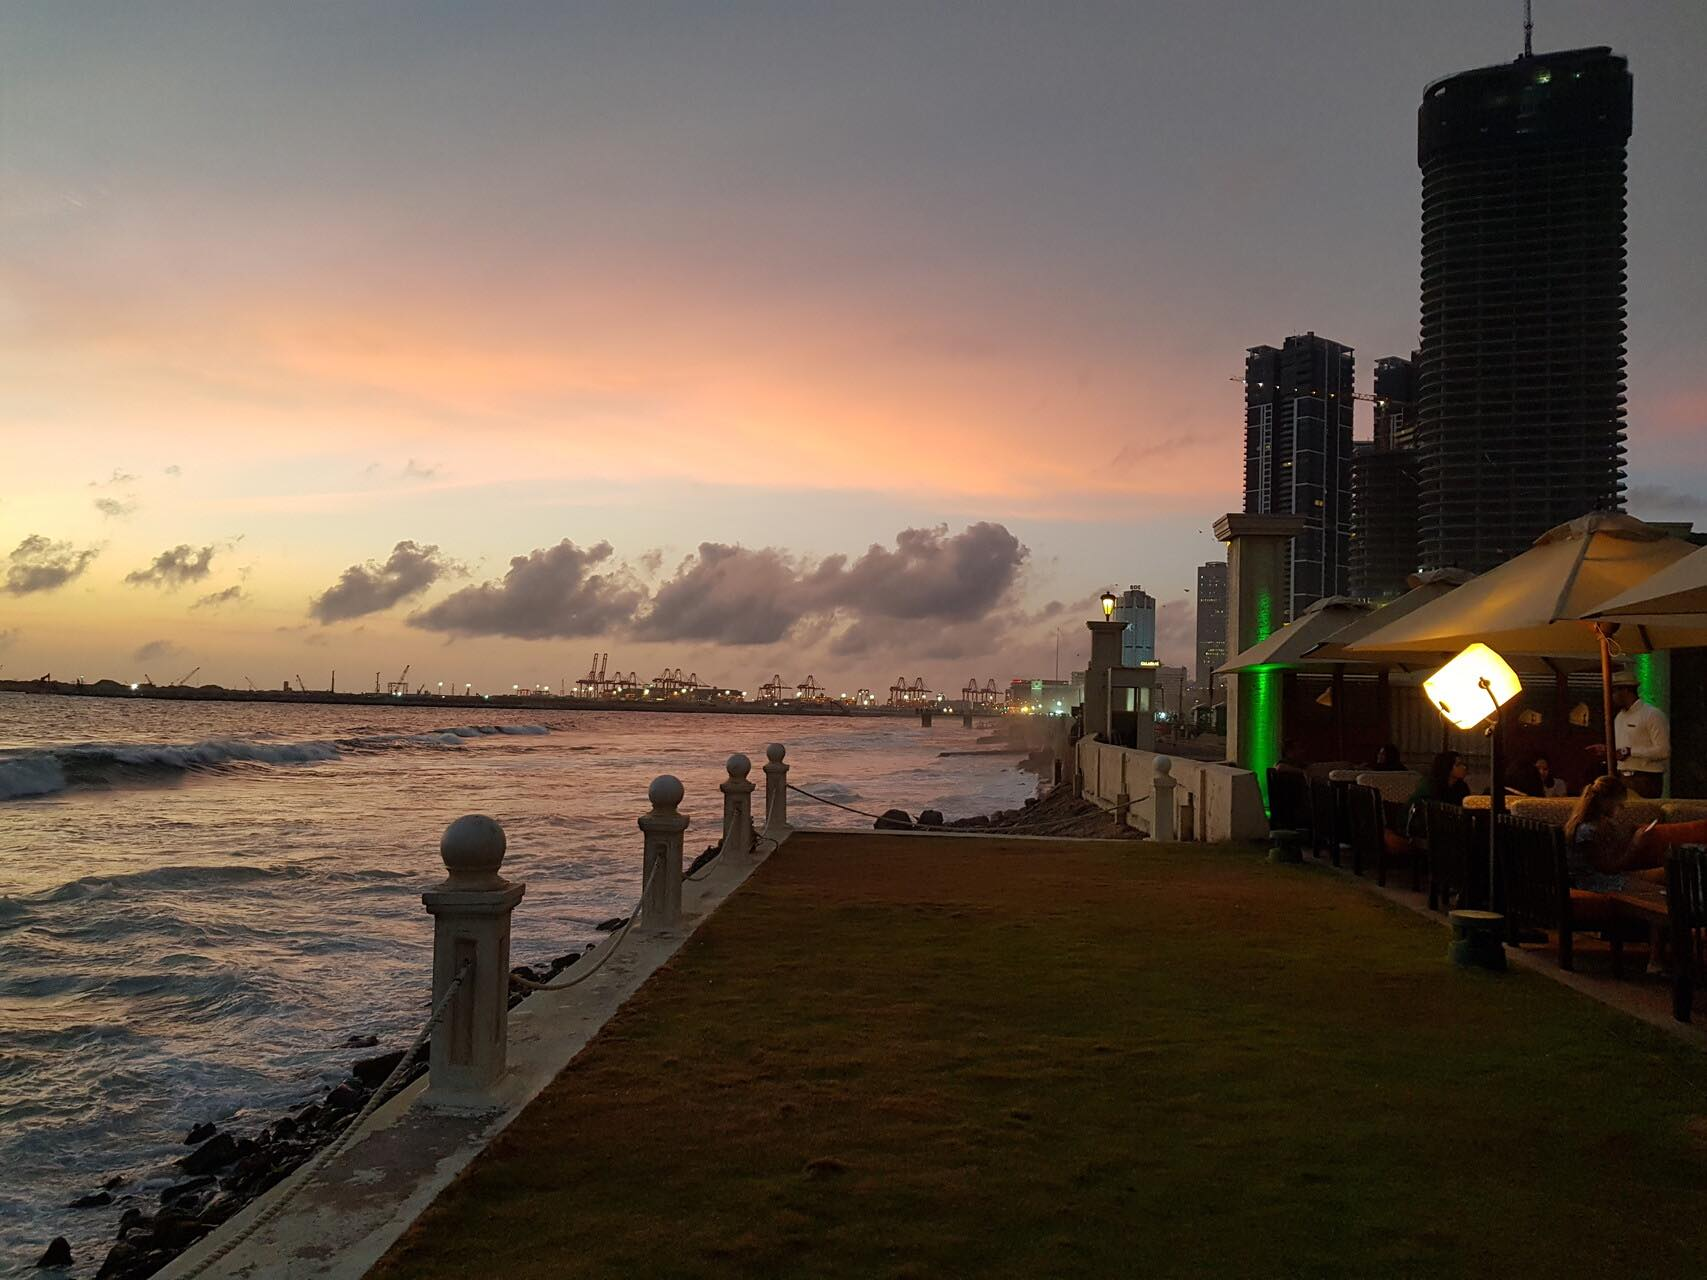 sri-lanka-galle-face-hotel-colombo-holiday-review-feedback-invite-to-paradise-quentin-kate-hulm.jpg